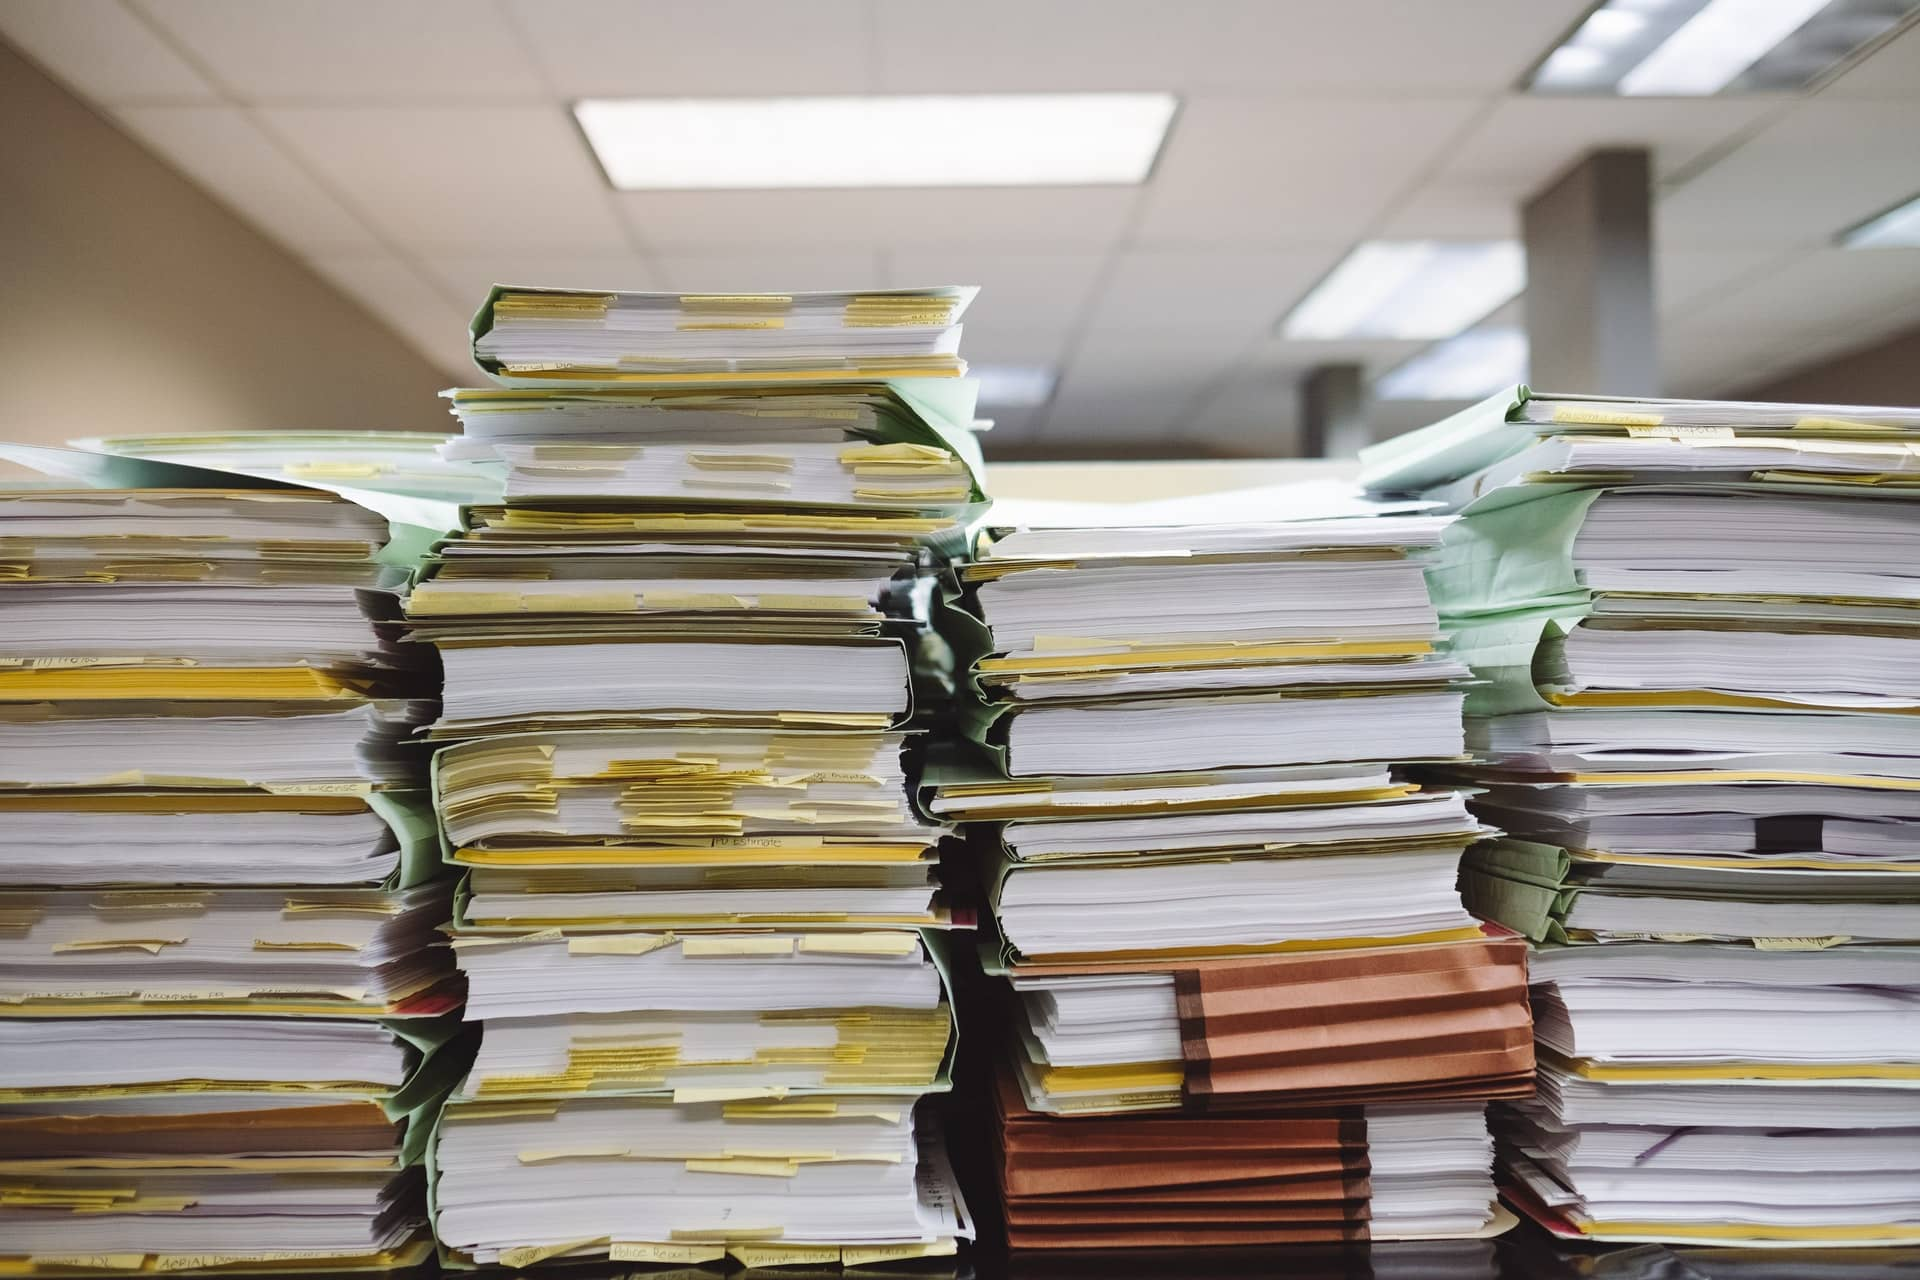 stacks of books and paper